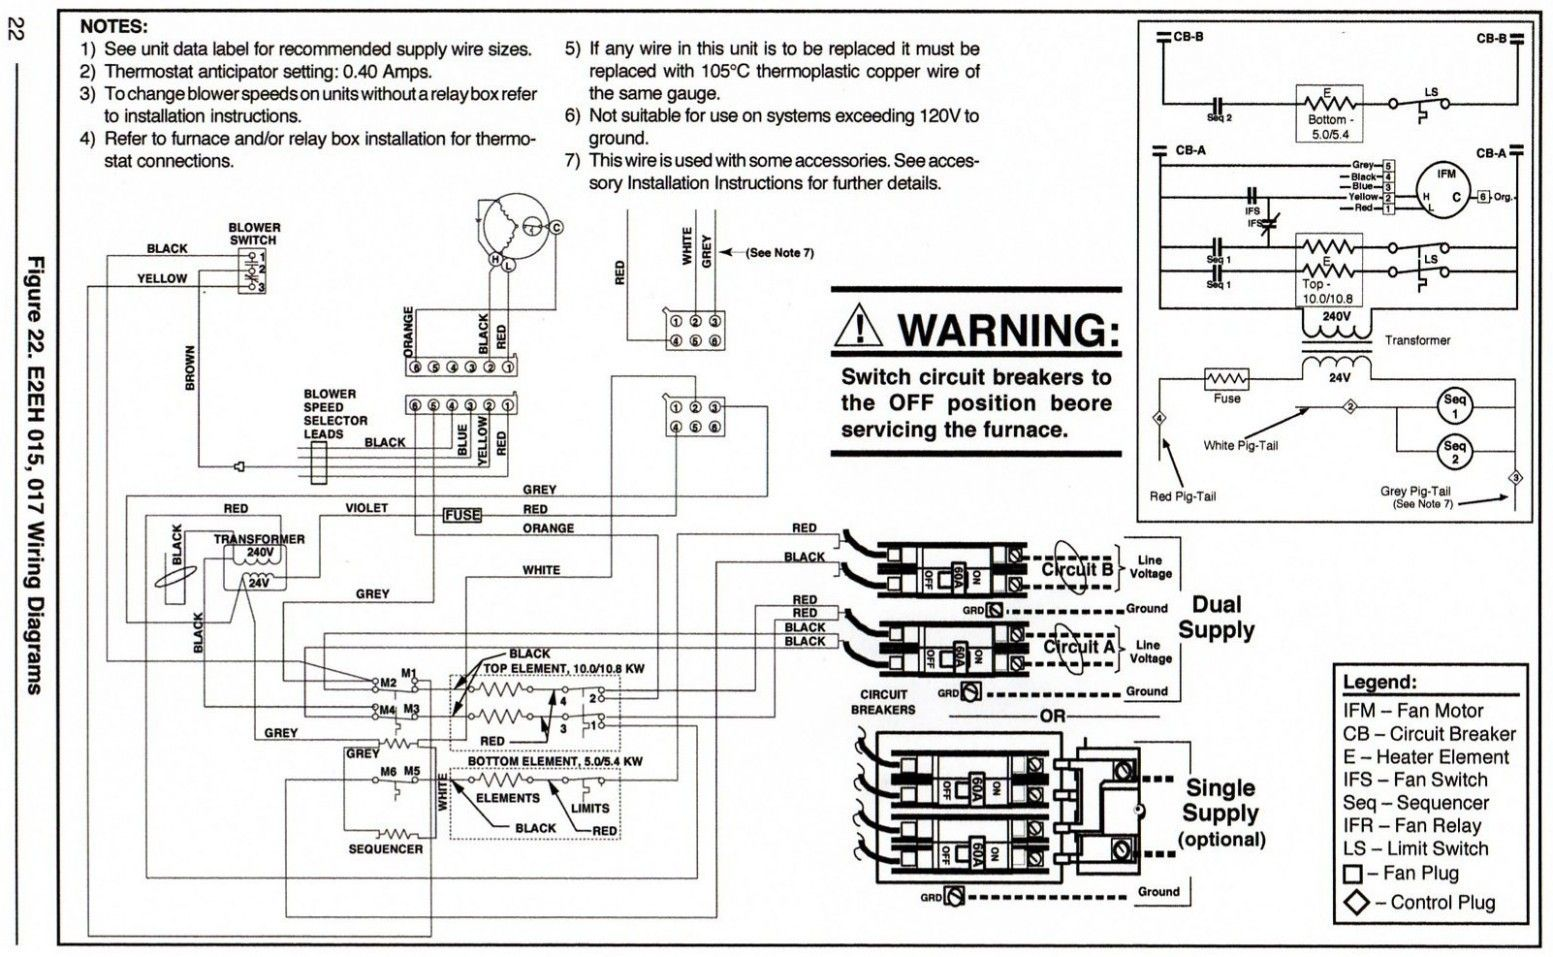 Nordyne E2eb 015ha Wiring Diagram Intertherm Sequencer Airfurnace Us Endear For E2eb 015ha Wiring Di Thermostat Wiring Electric Furnace Thermostat Installation